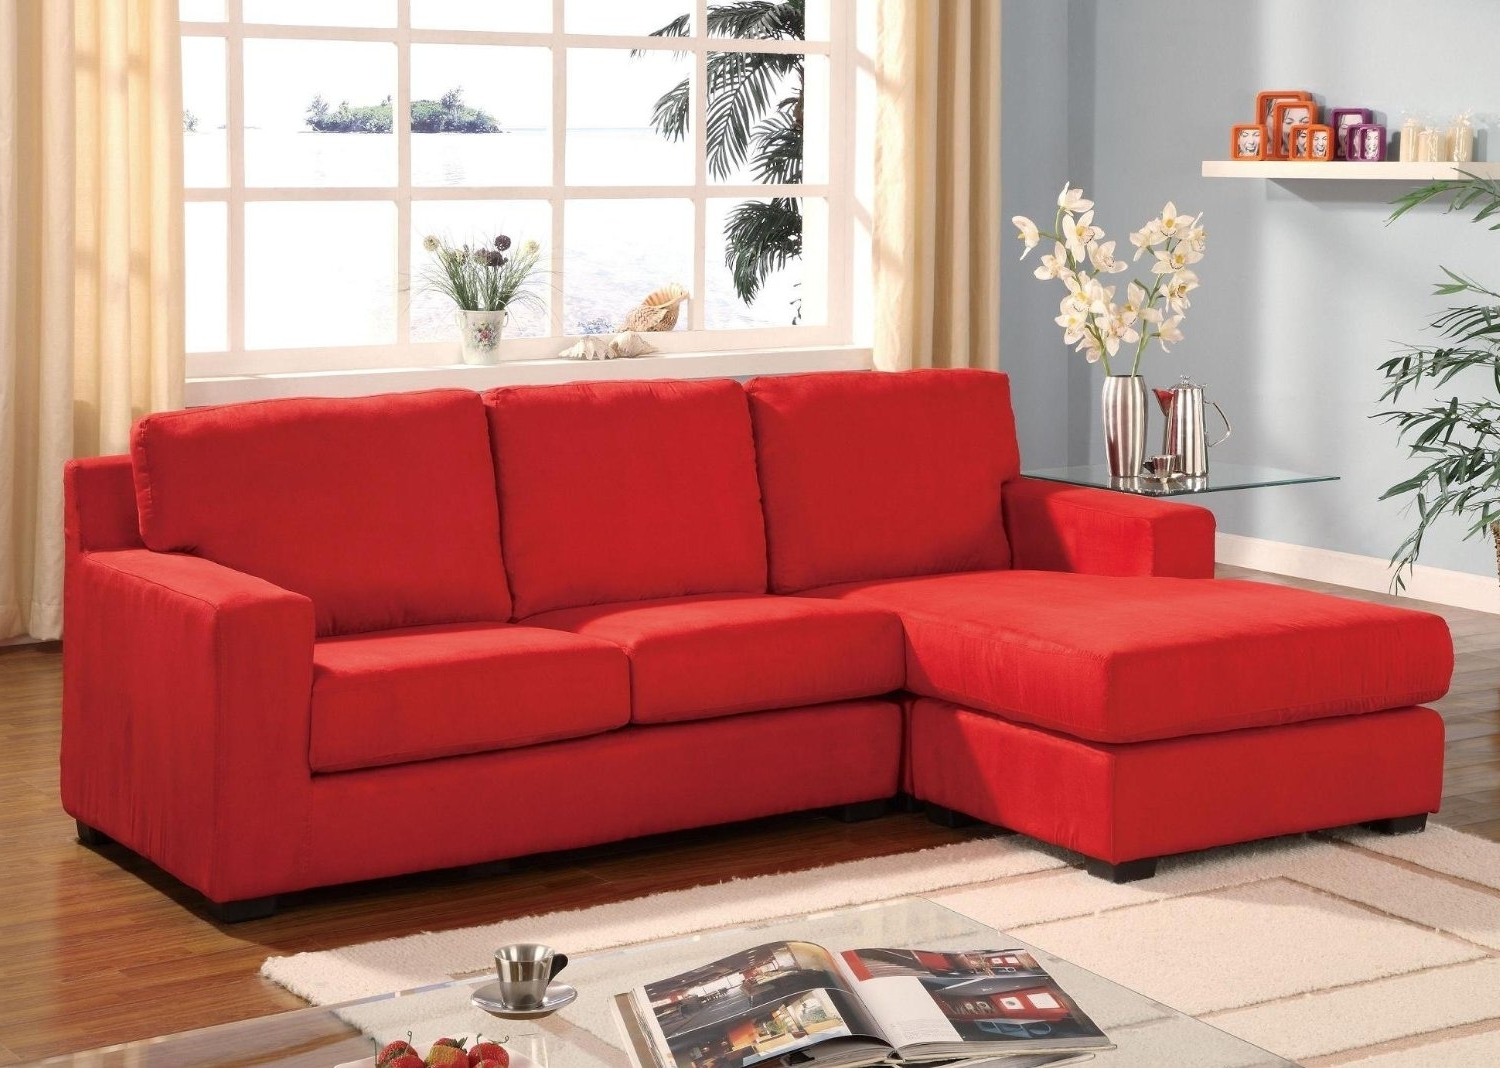 Sofa : Red Microfiber Sectional Inspirational Black And Red Regarding Most Recently Released Red Sleeper Sofas (View 16 of 20)